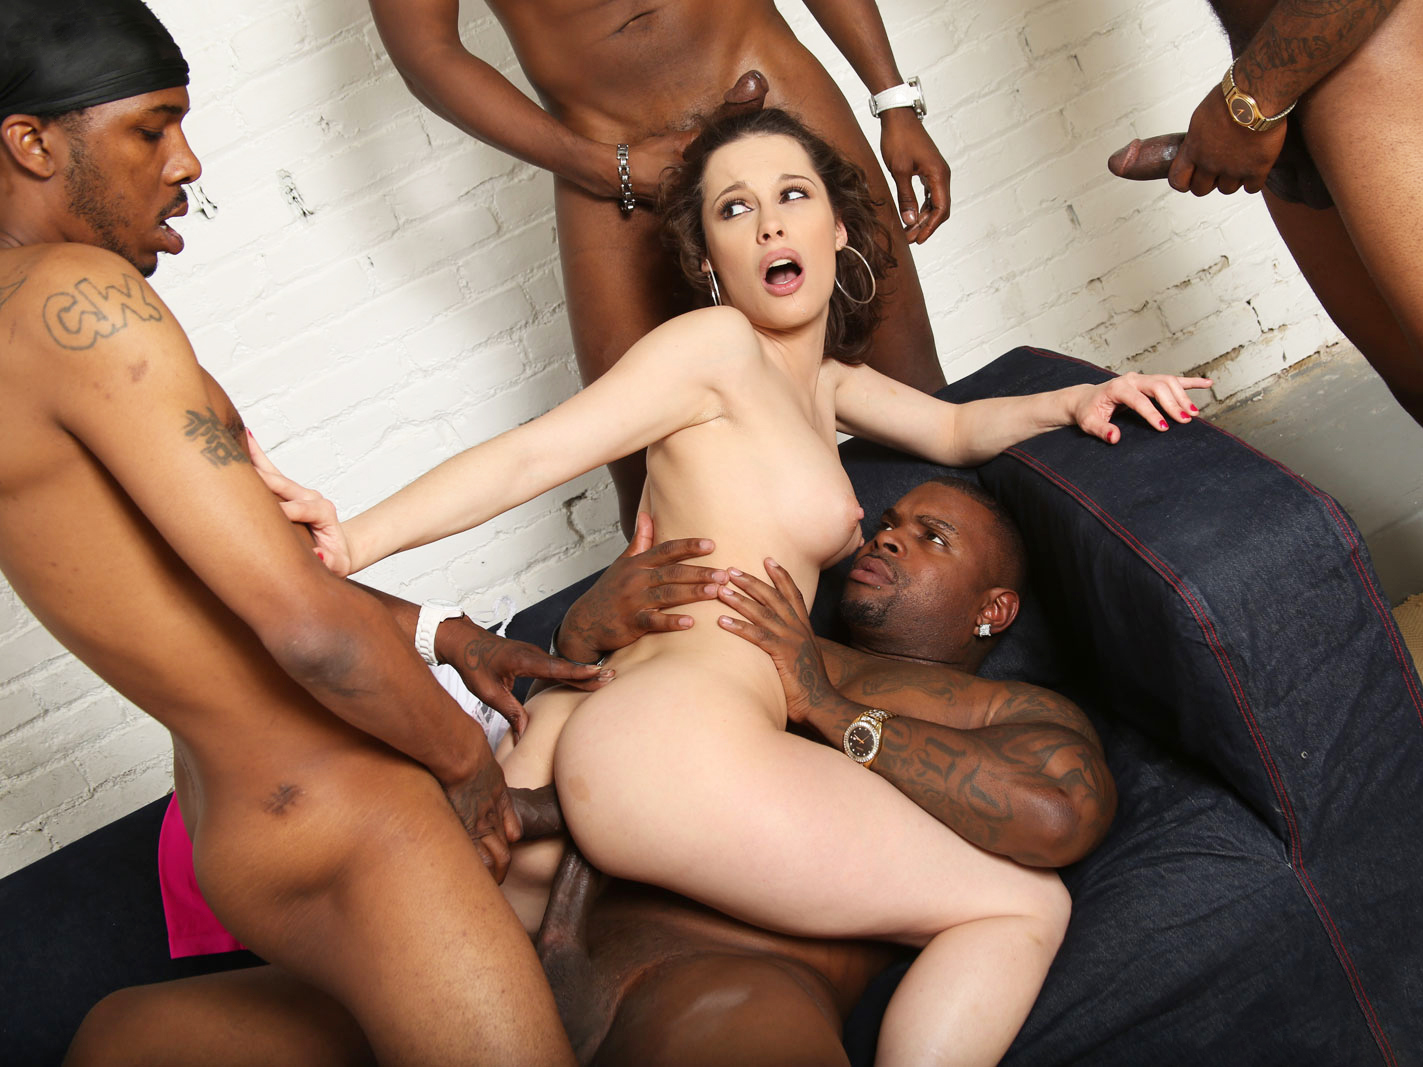 black-girl-stripped-by-gang-video-and-pussy-porn